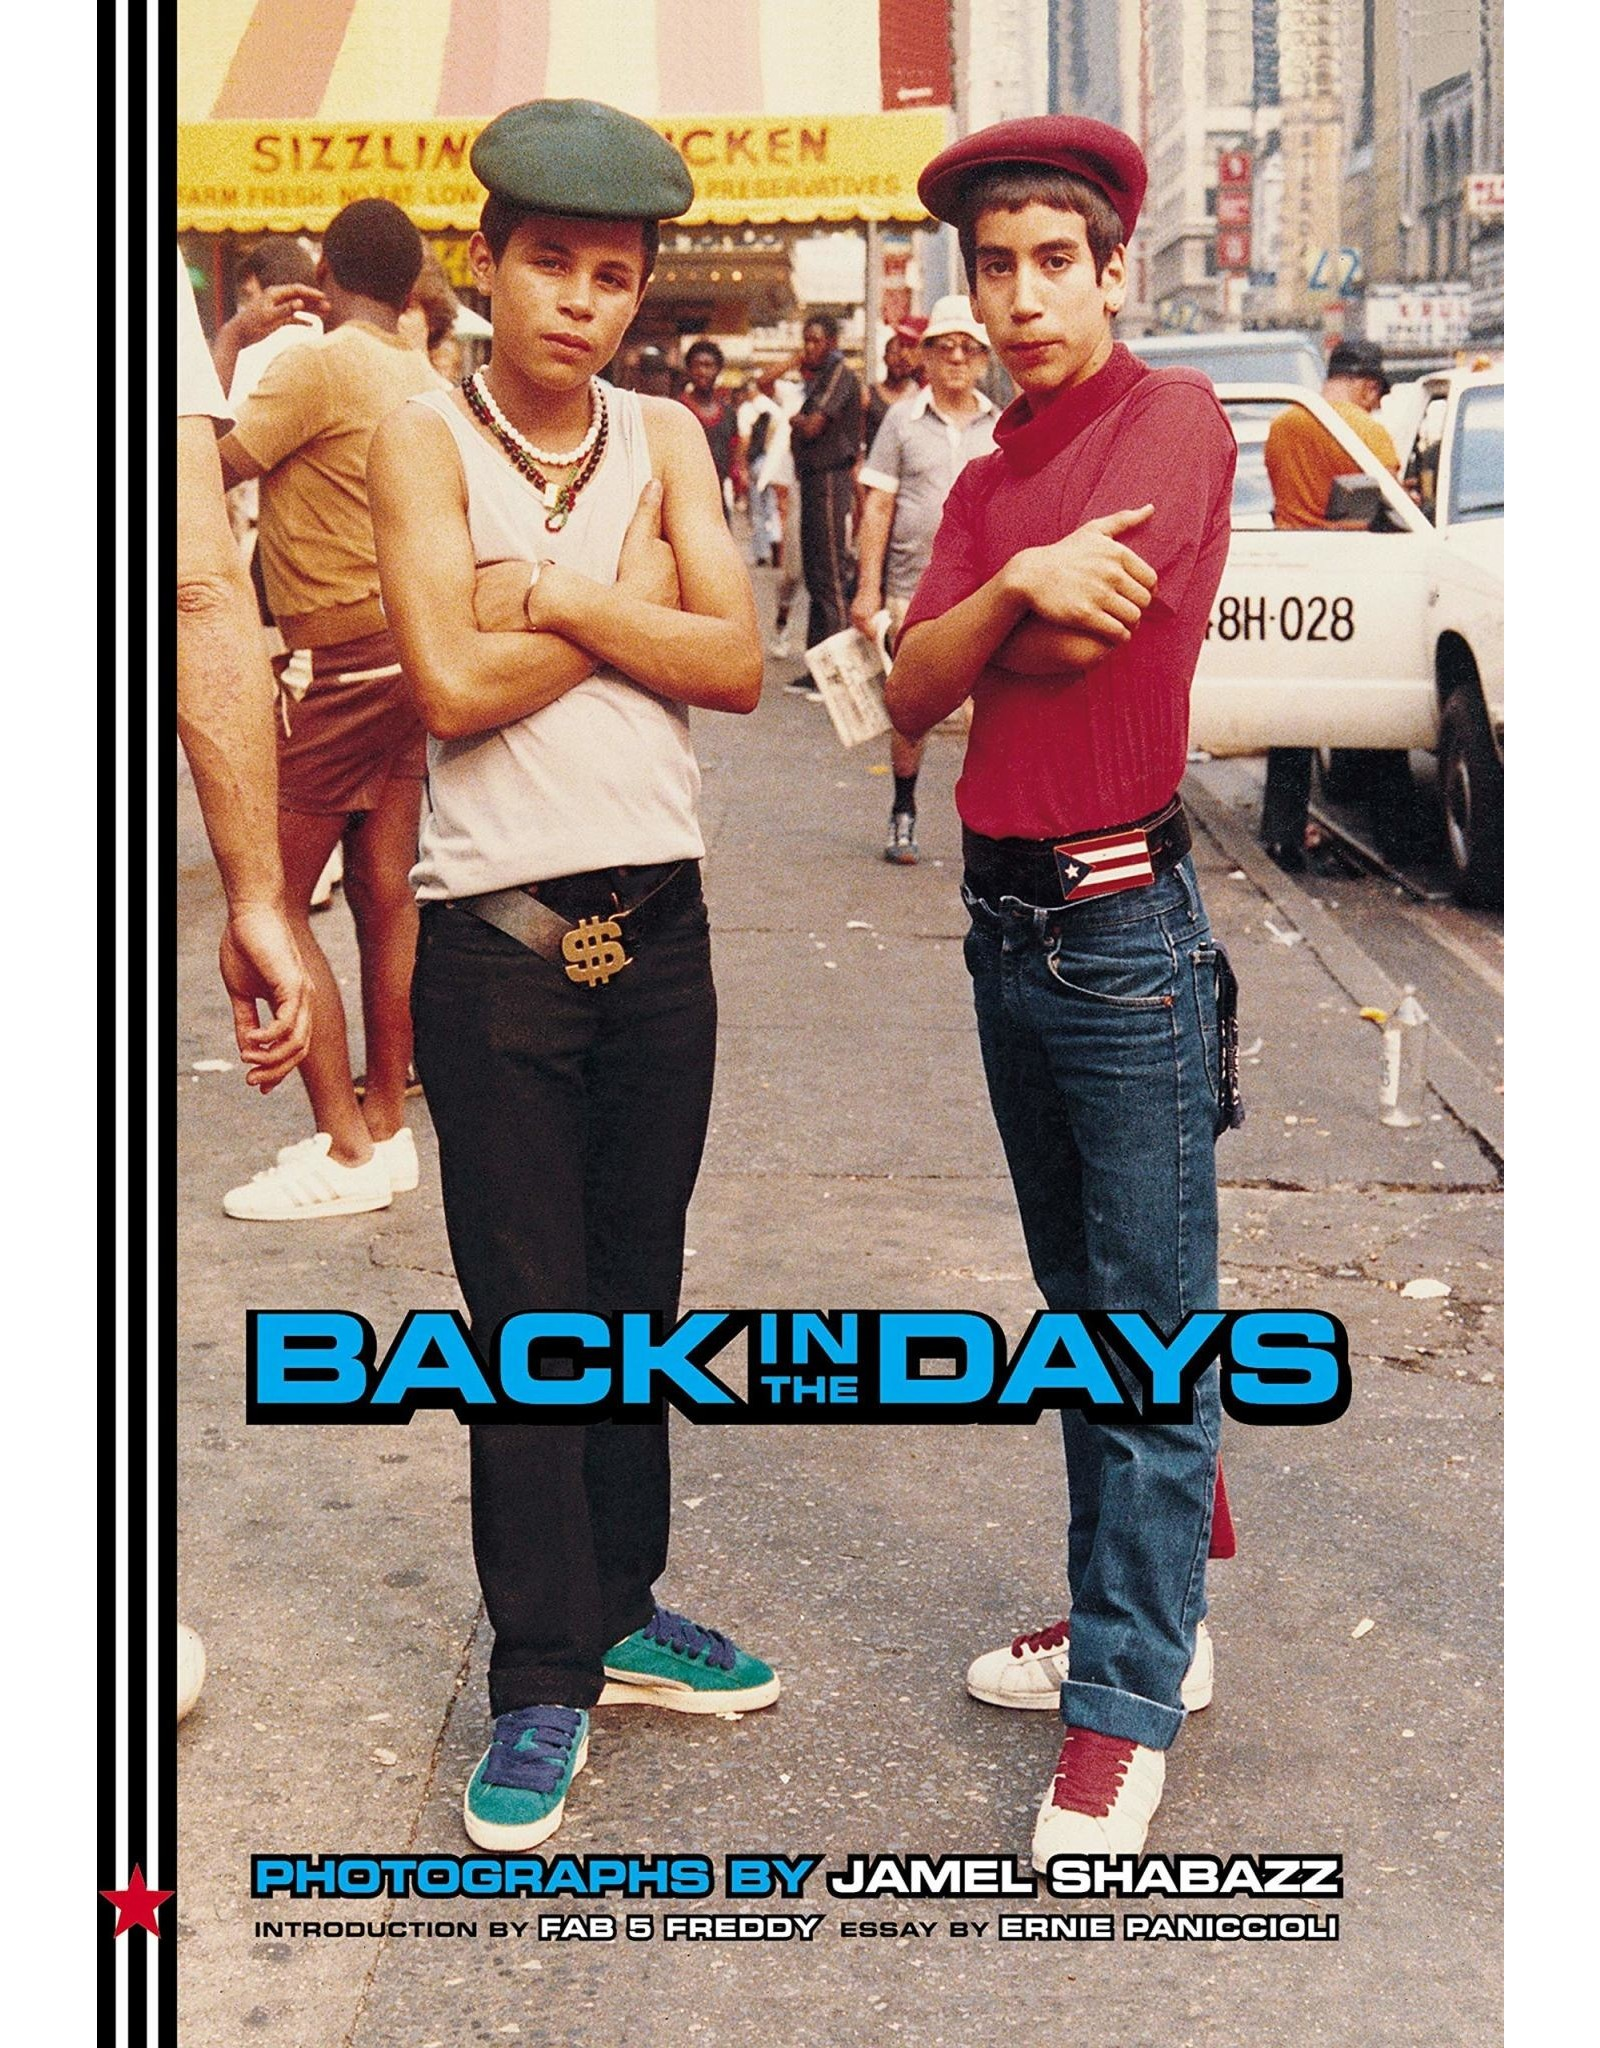 Jamel Shabazz: Back in the Days